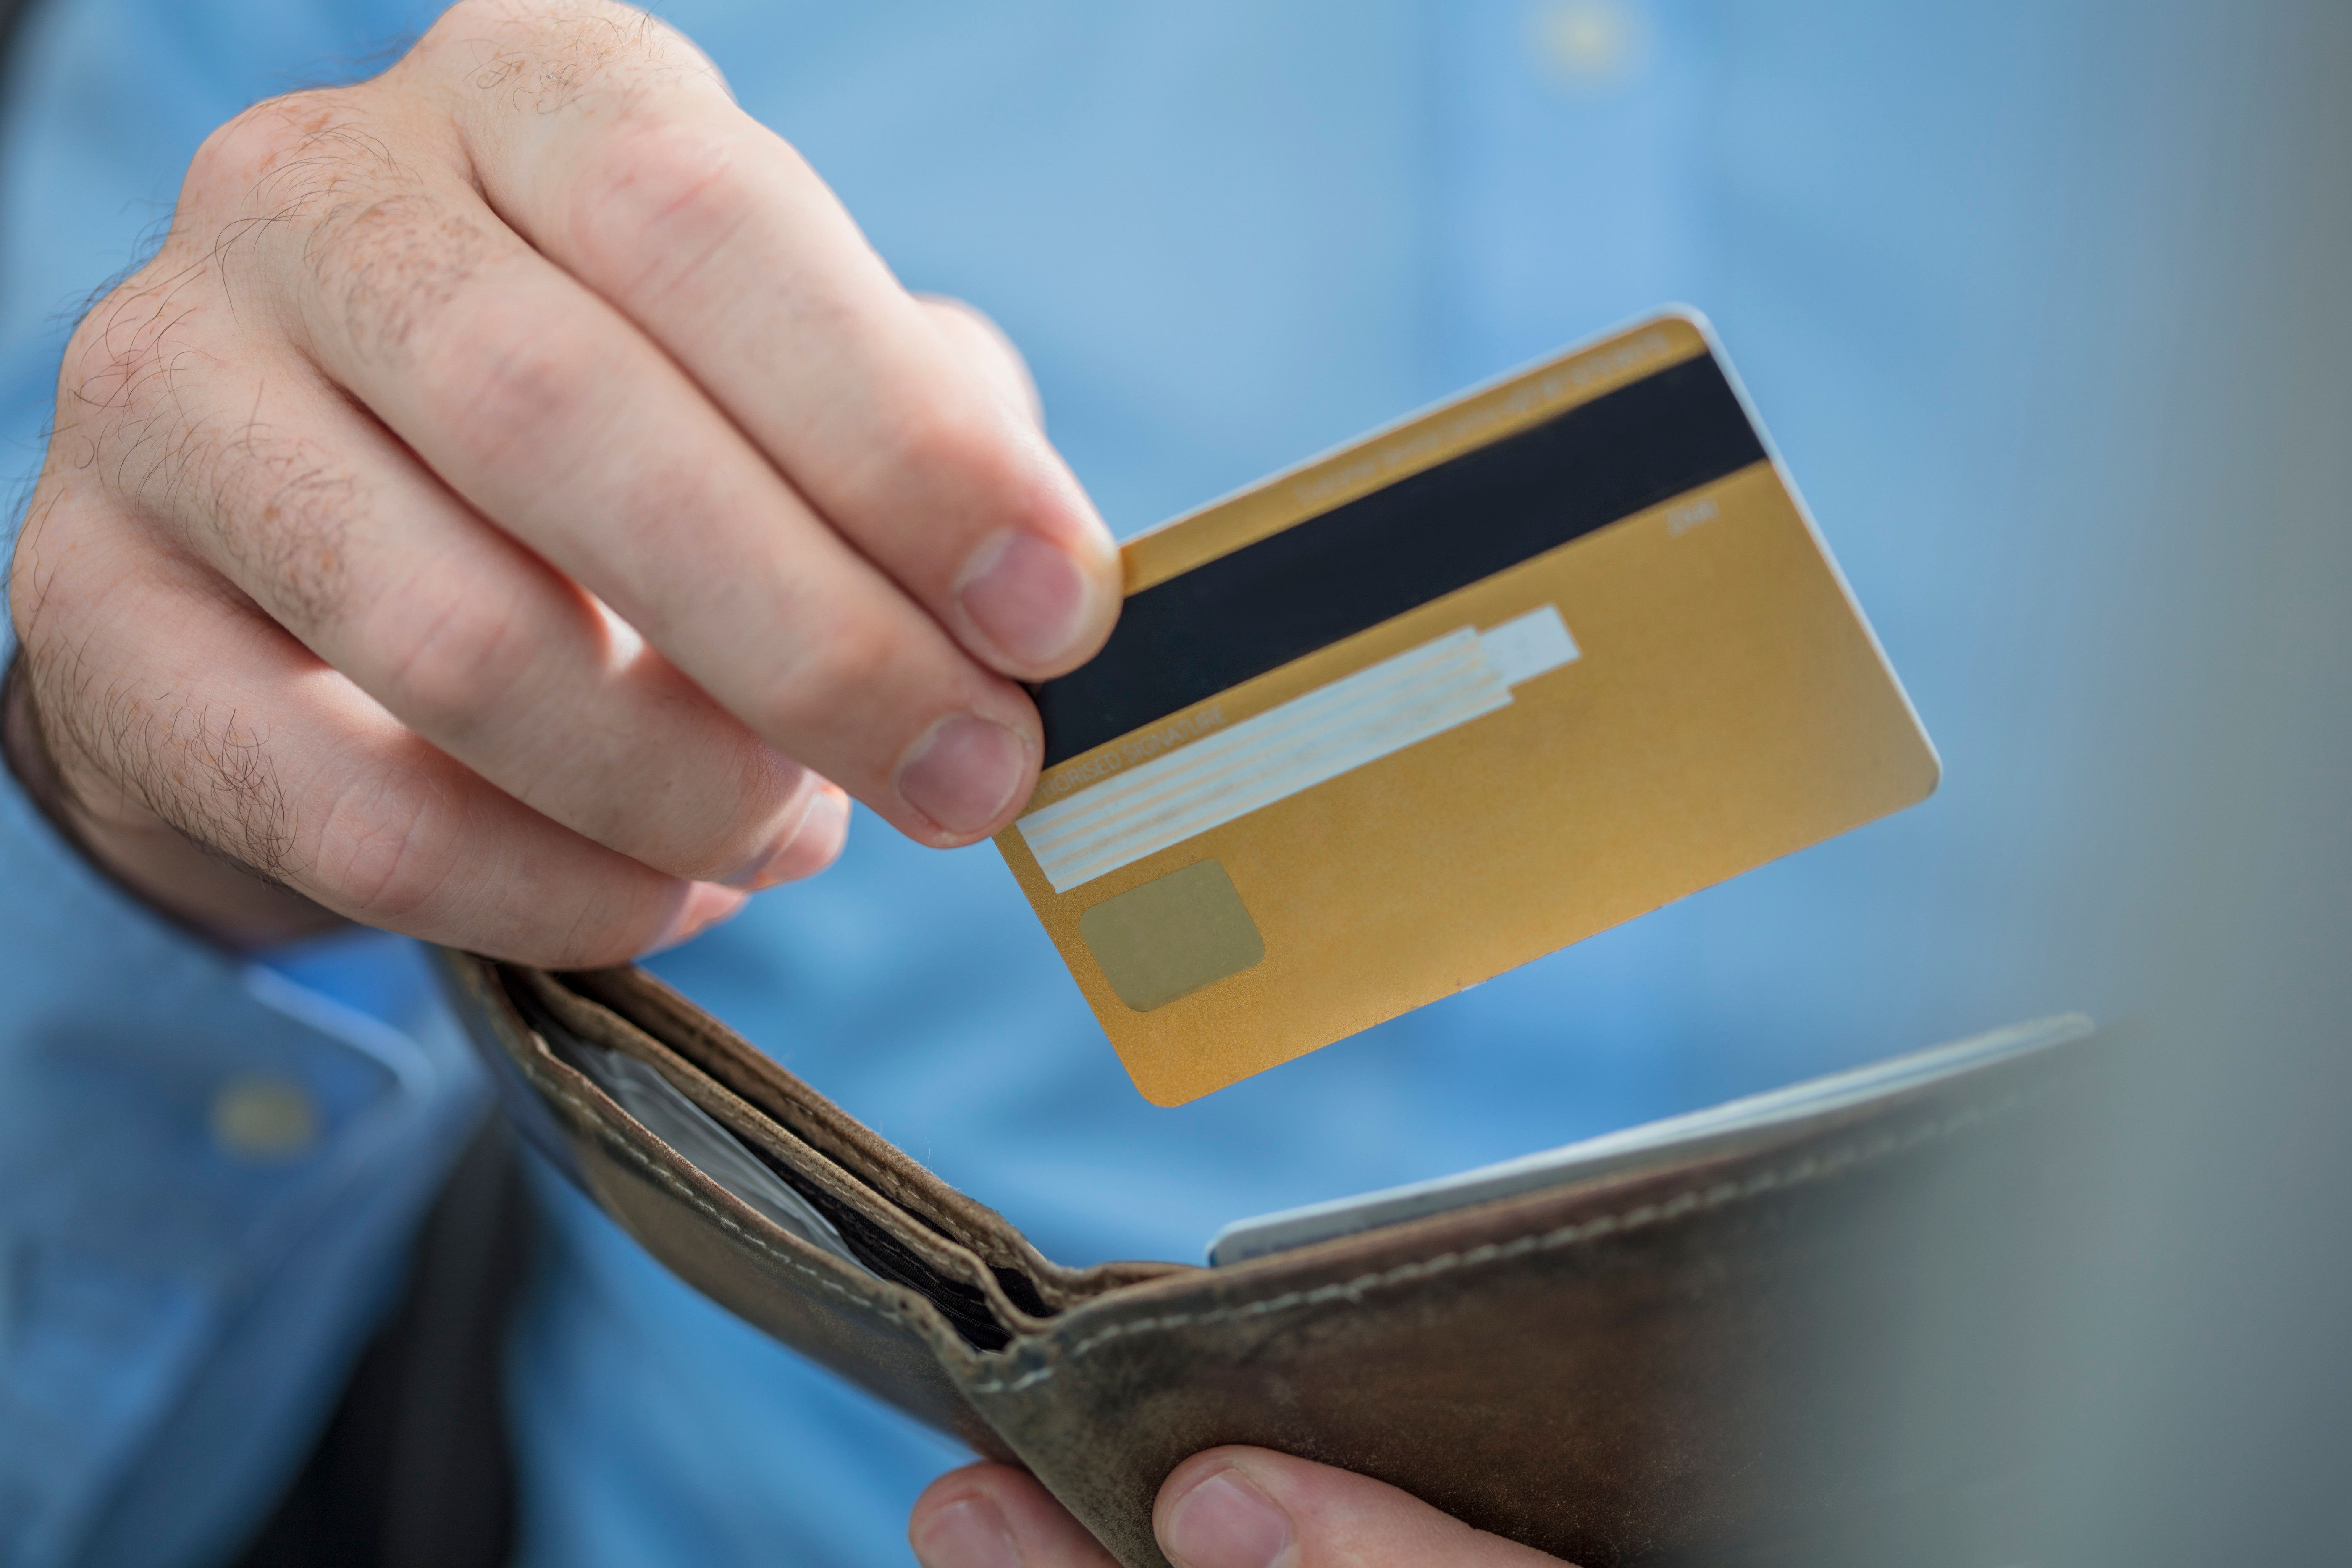 Read: 5 Times It's More Dangerous To Pay With A Debit Vs. Credit Card